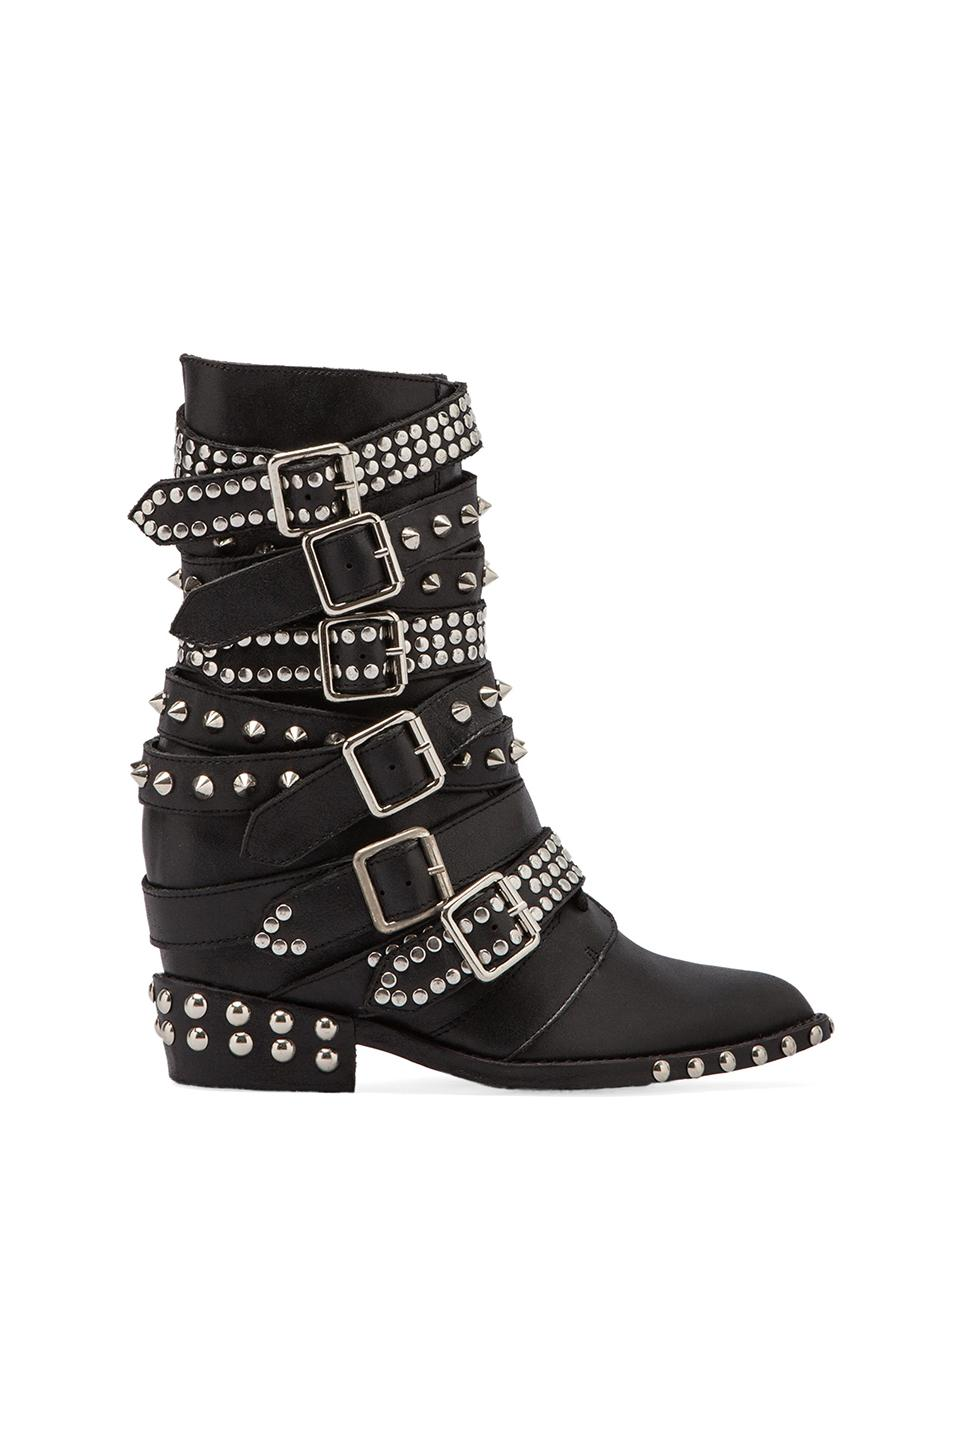 Jeffrey Campbell Draco Embellished Moto Boot in Black/ Sliver